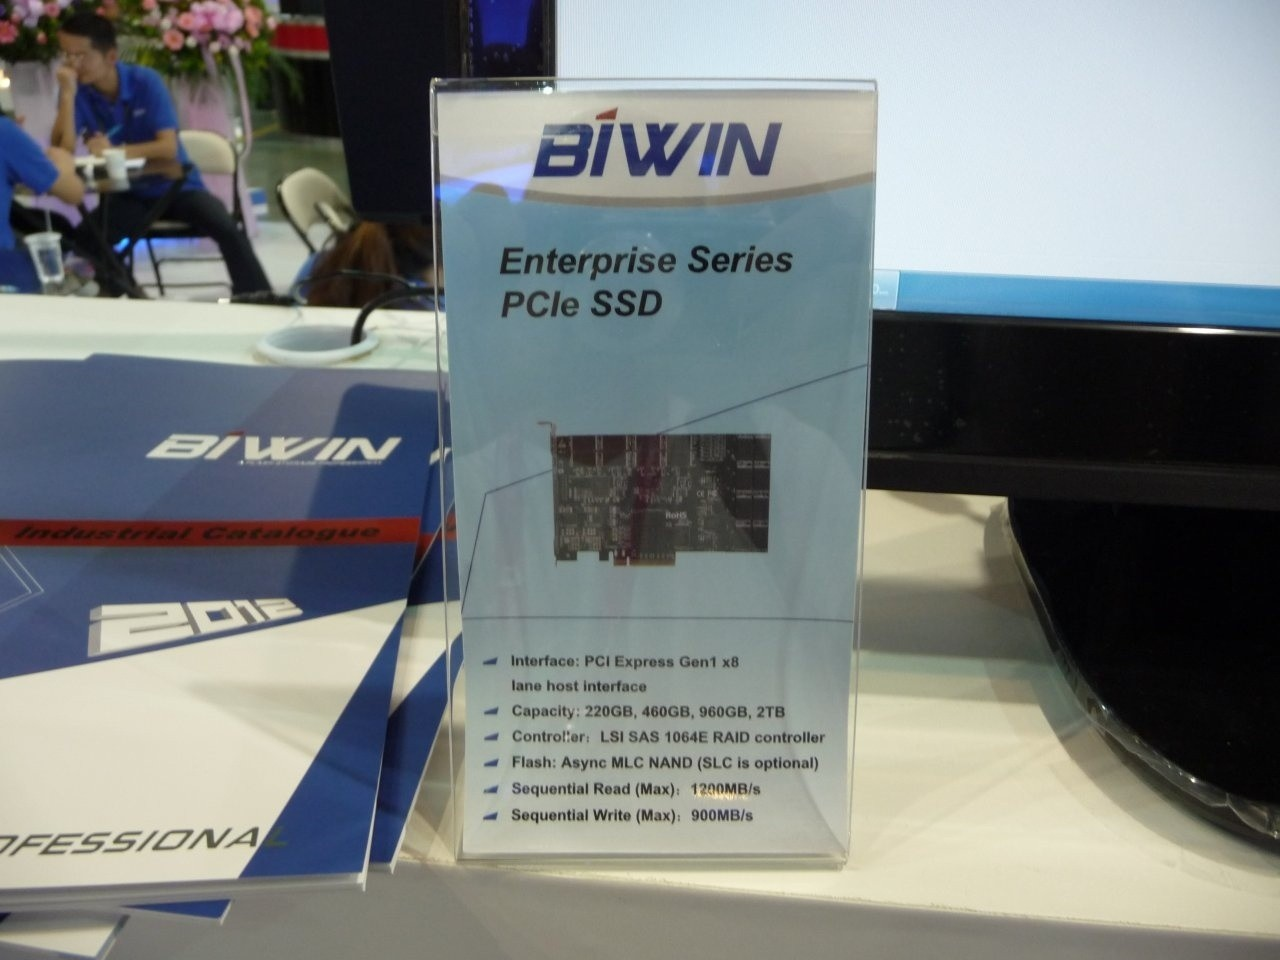 biwin_enters_the_pcie_race_on_the_road_to_bi_winning